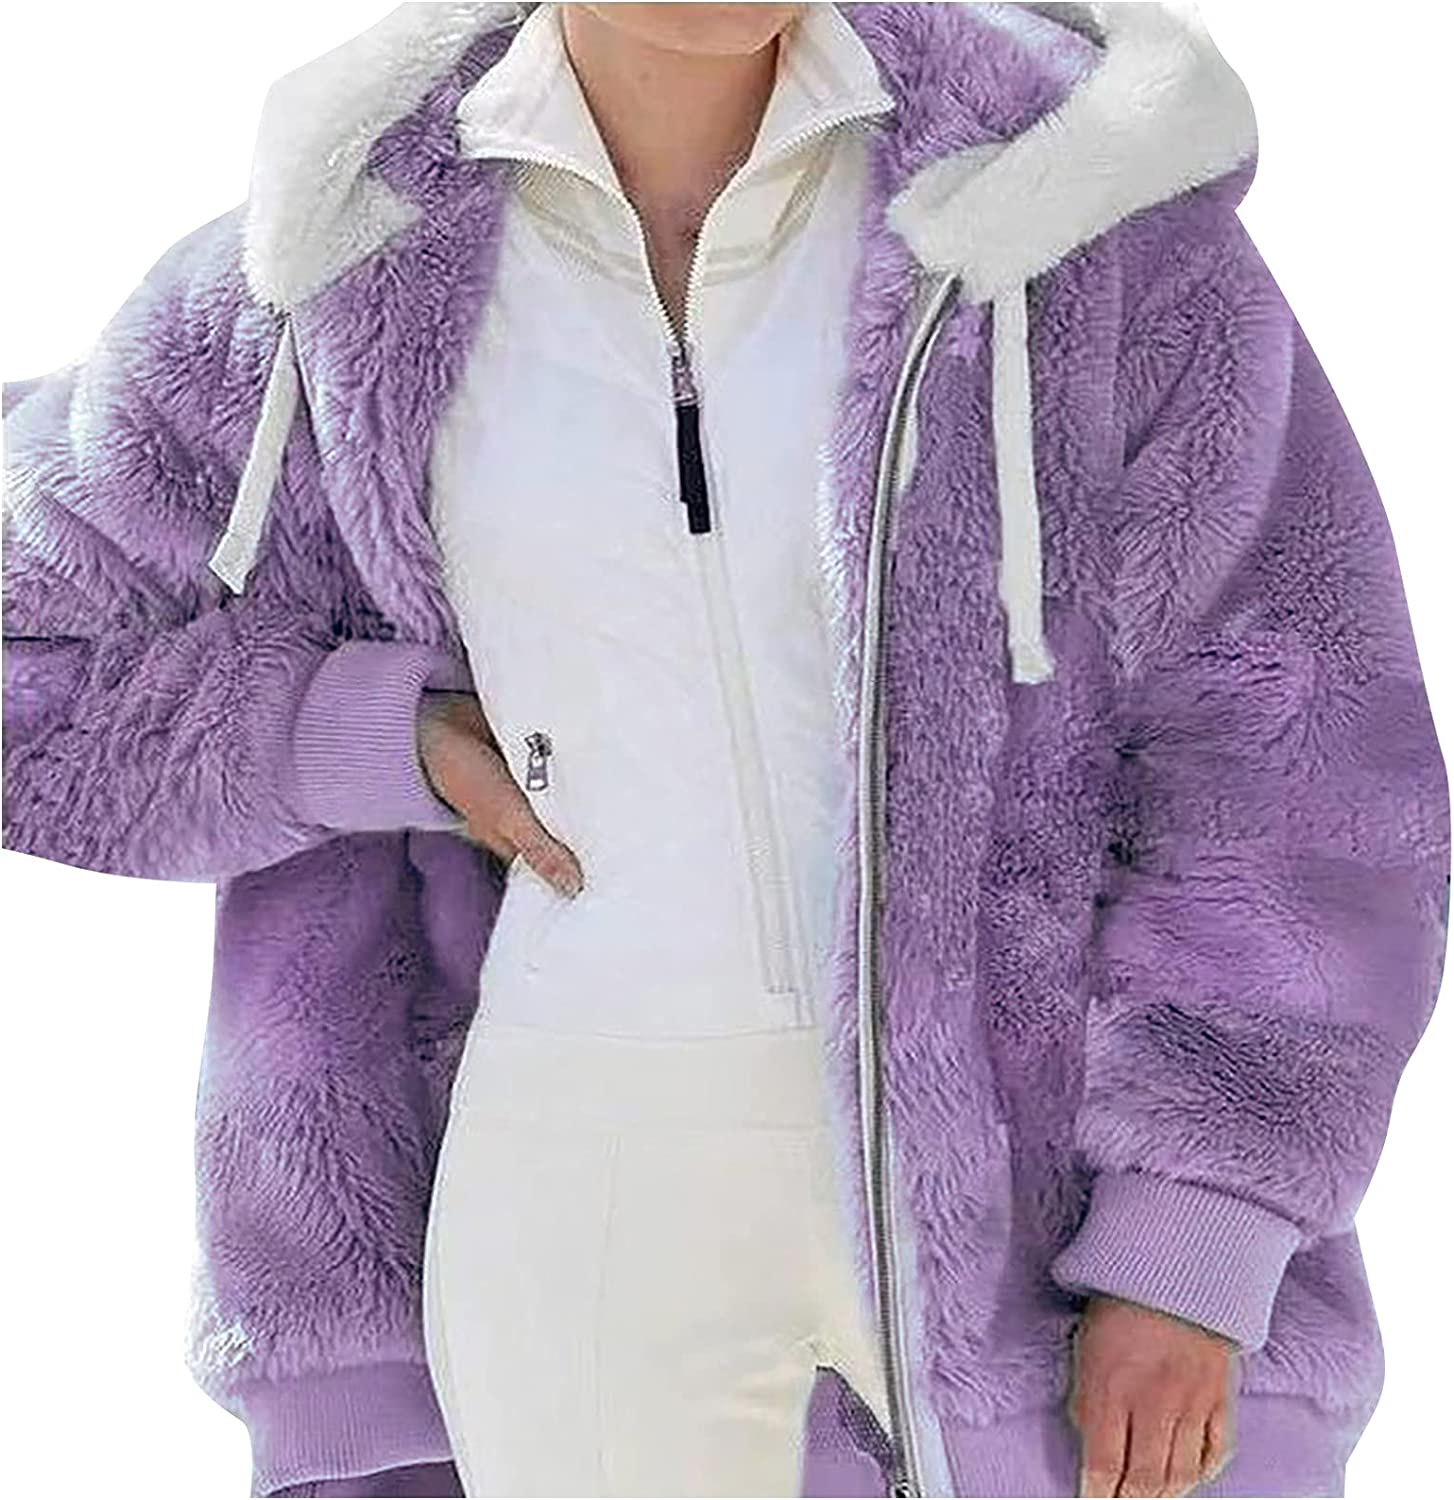 Women's Winter Faux Fur Coat Plus Size Solid Color Full-zip Hooded Tops Oversized Plush Jacket Loose Pocket Outerwear